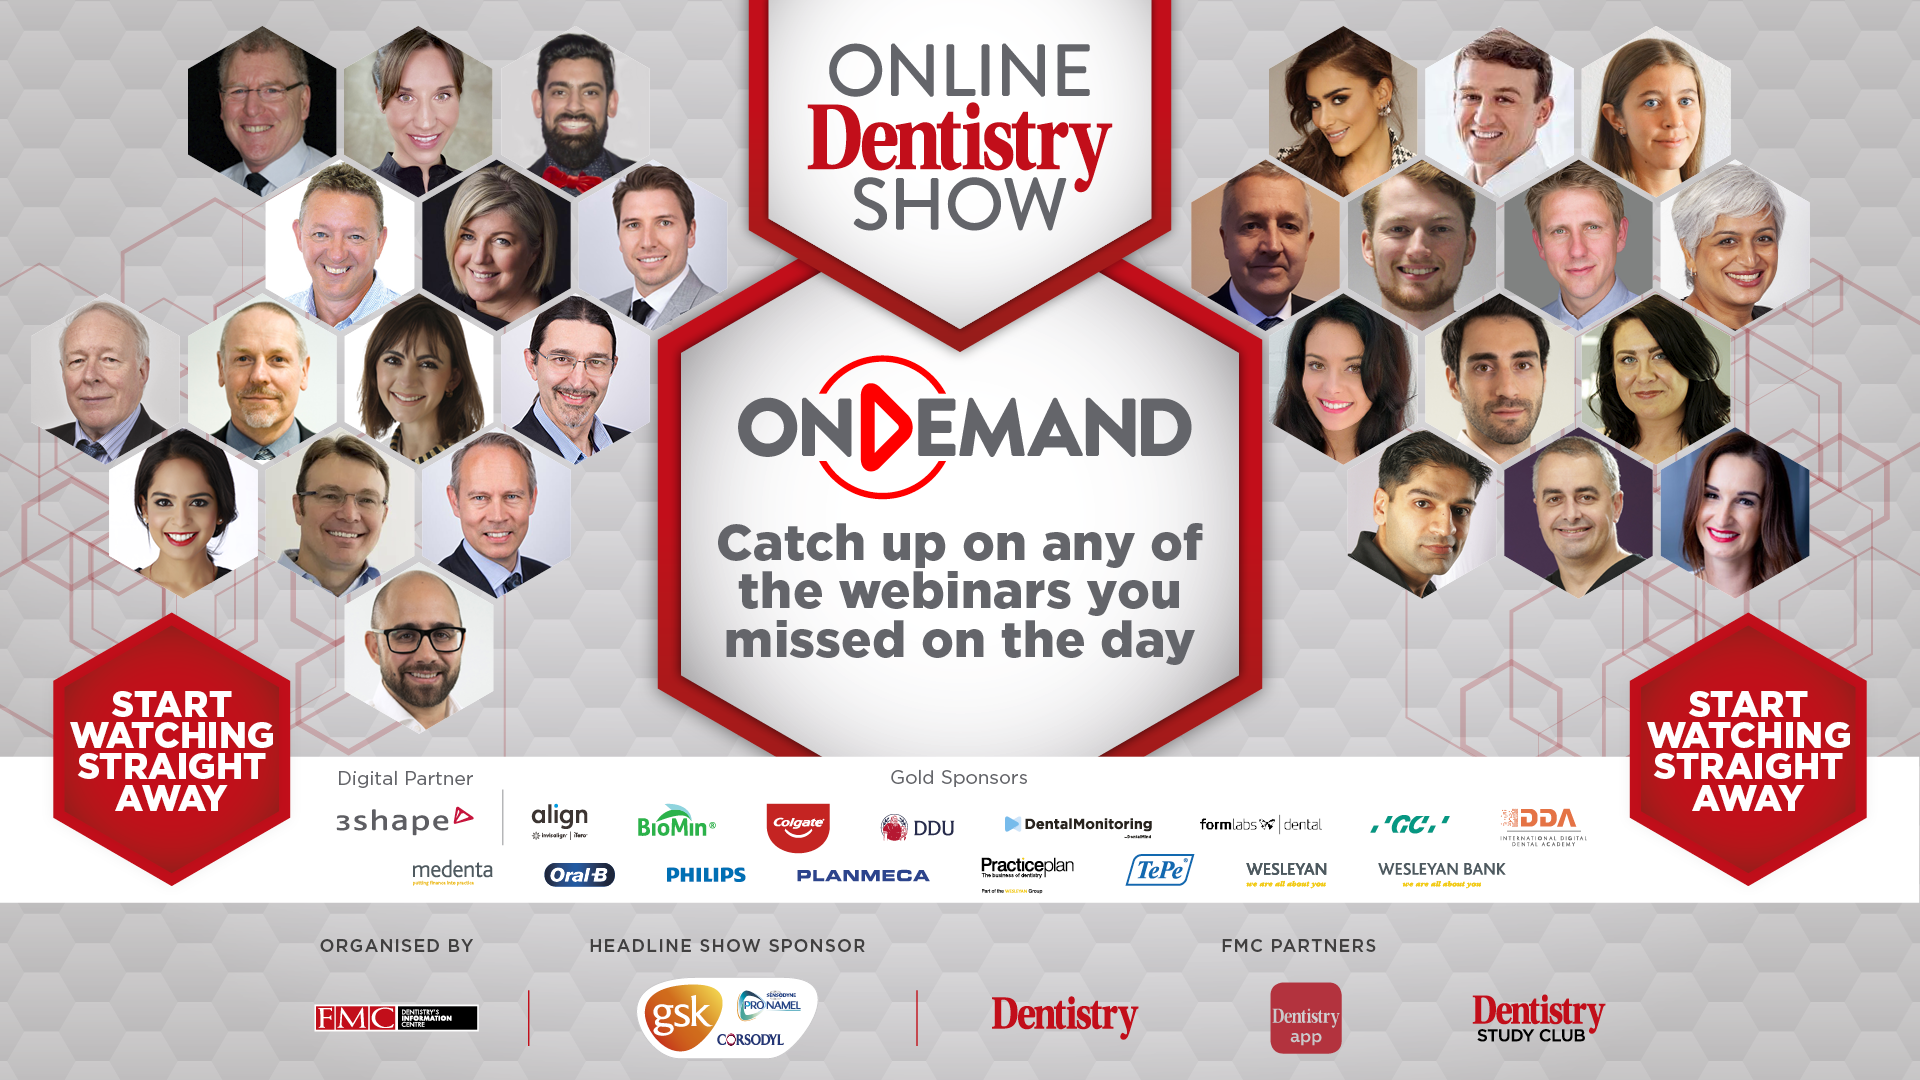 Online Dentistry Show – On Demand now